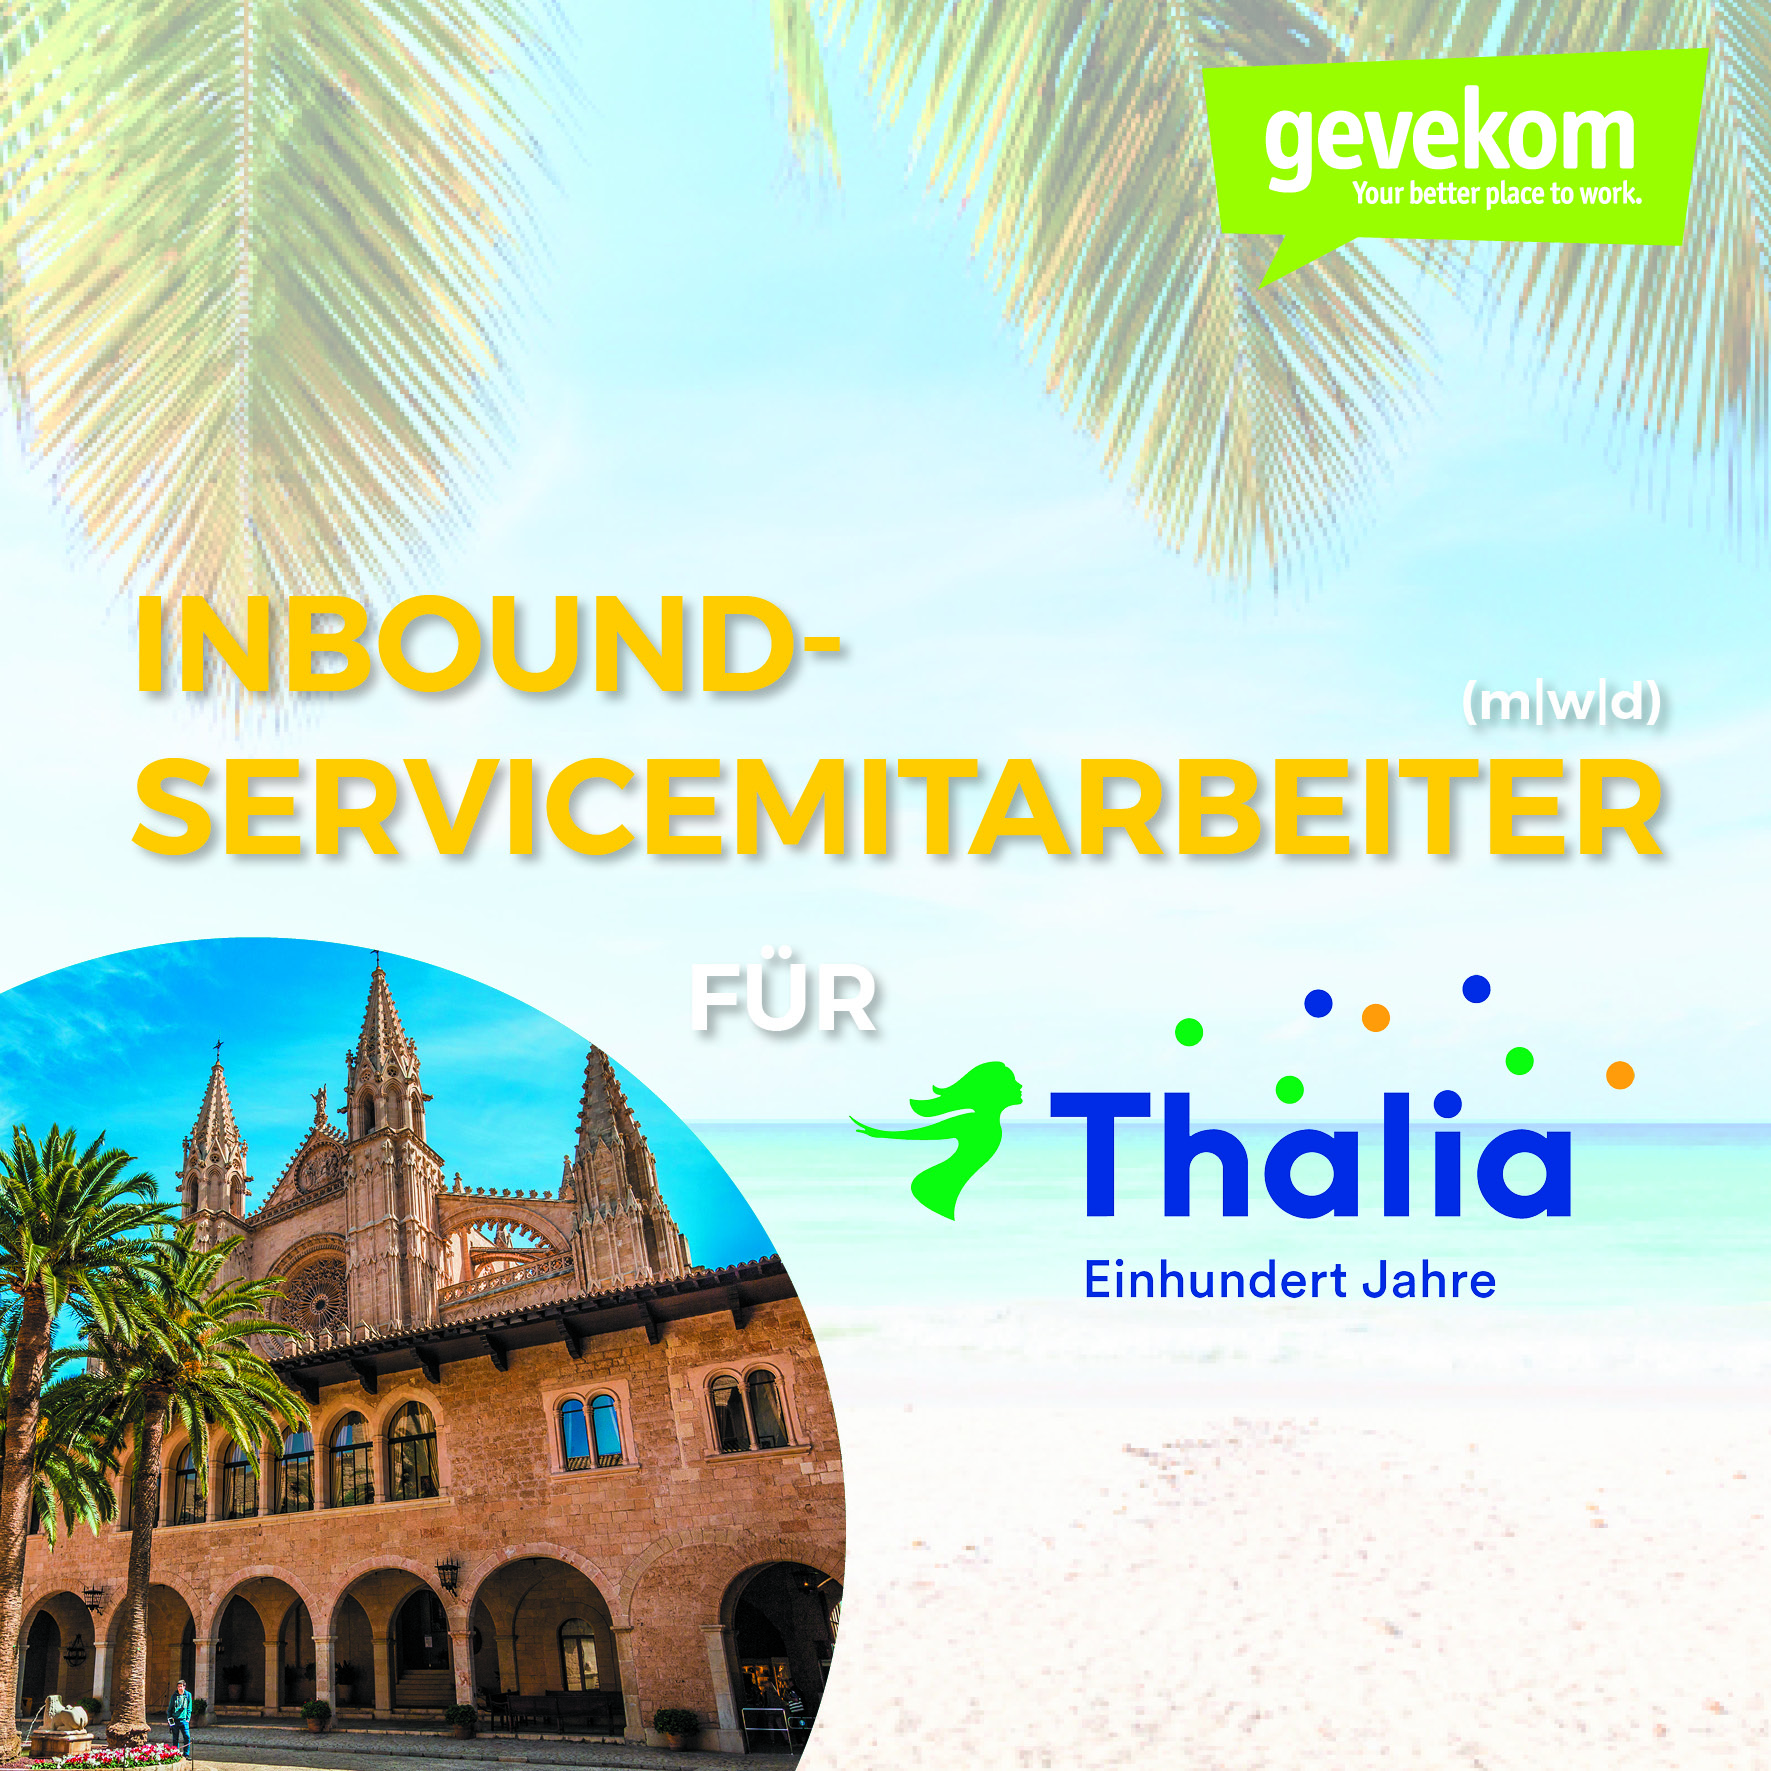 gevekom customer Services España S.L.U